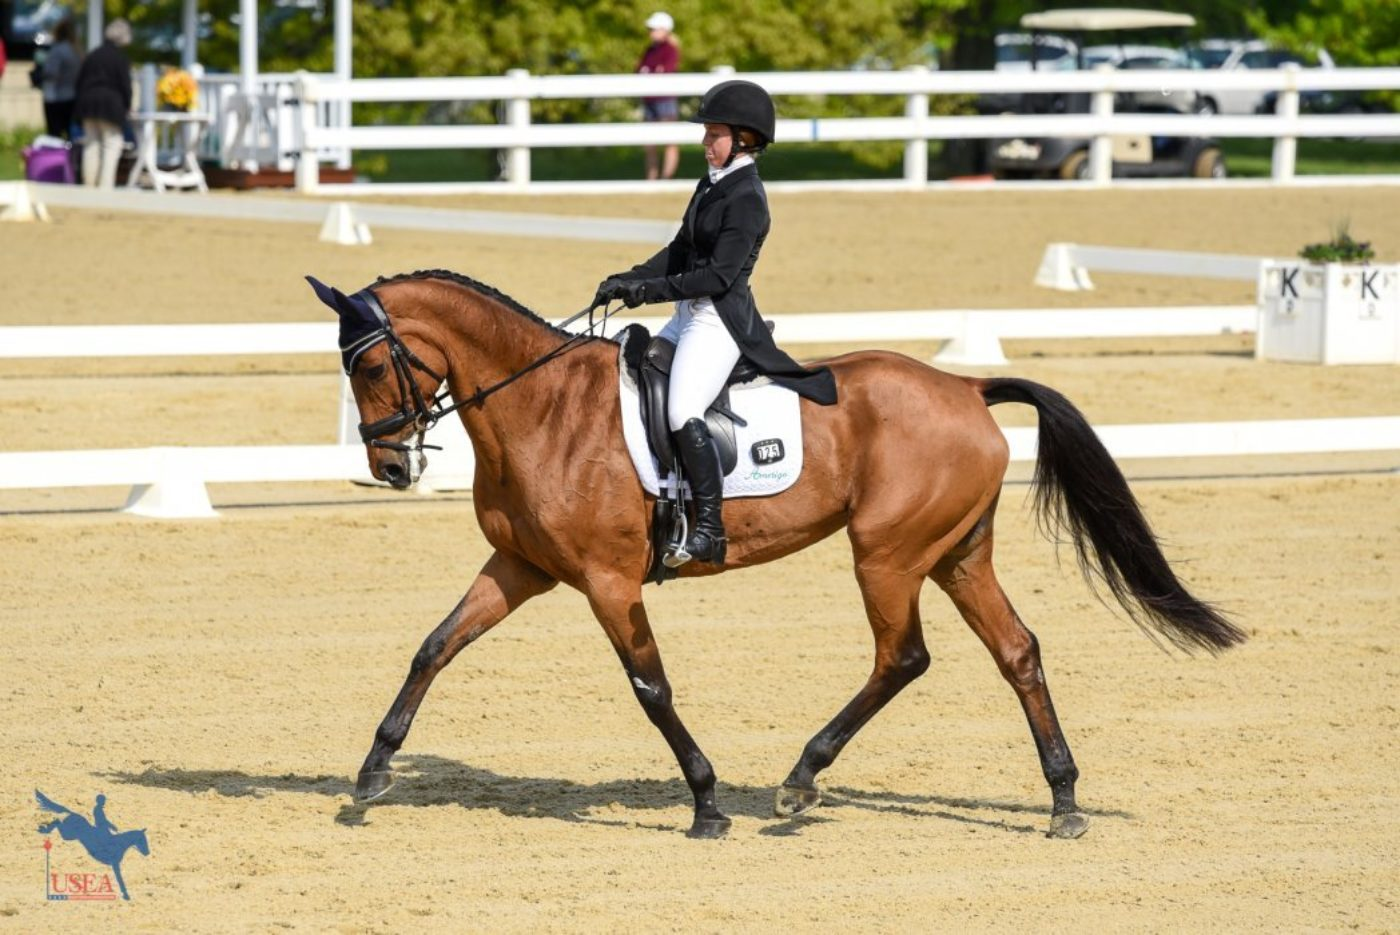 13th - Zoe Crawford and K.E.C. Zara - 40.0